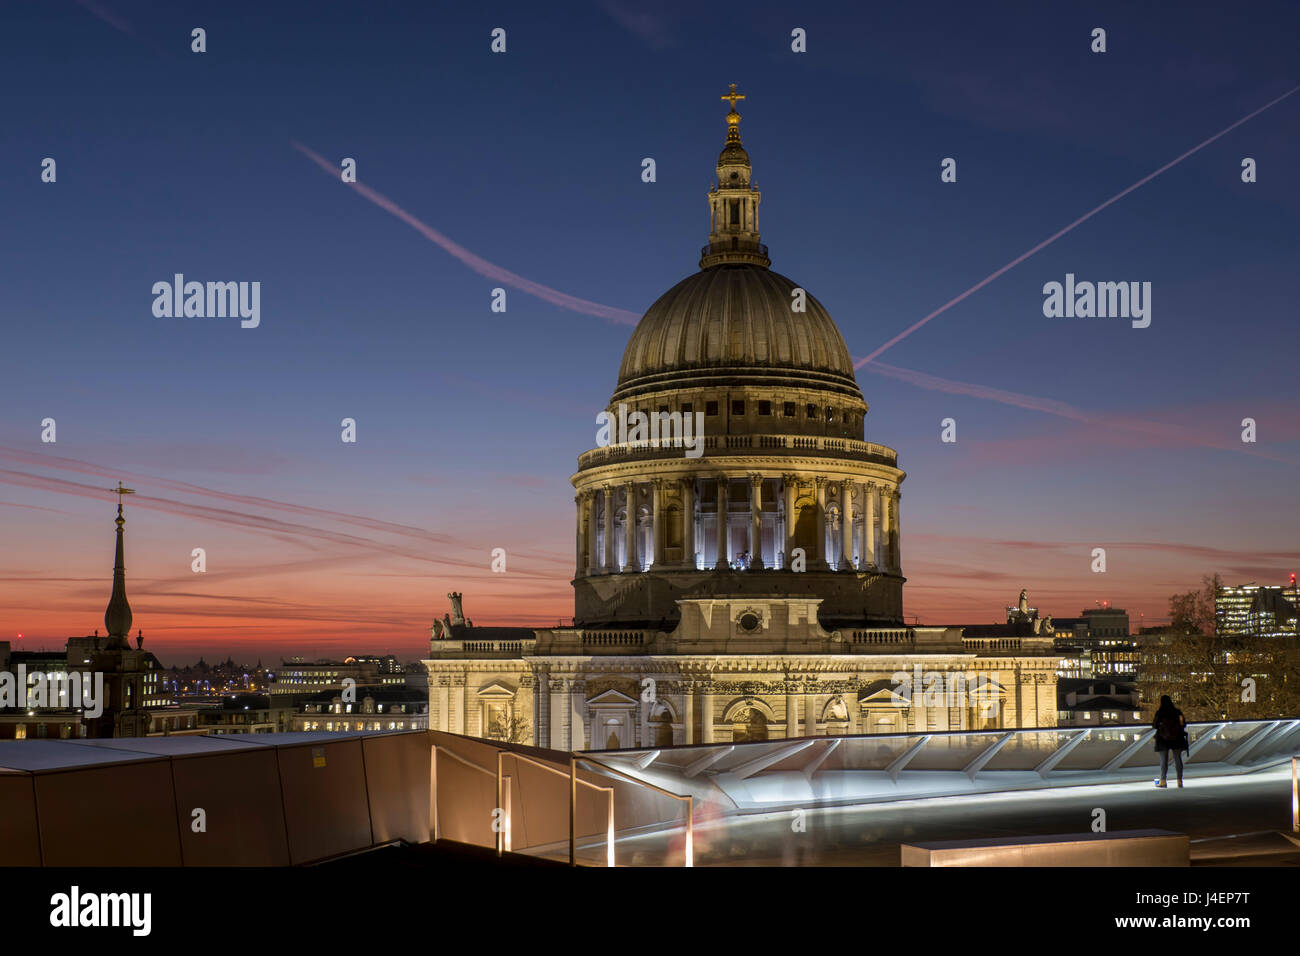 Dome of St. Pauls Cathedral from One New Change shopping mall, London, England, United Kingdom, Europe - Stock Image